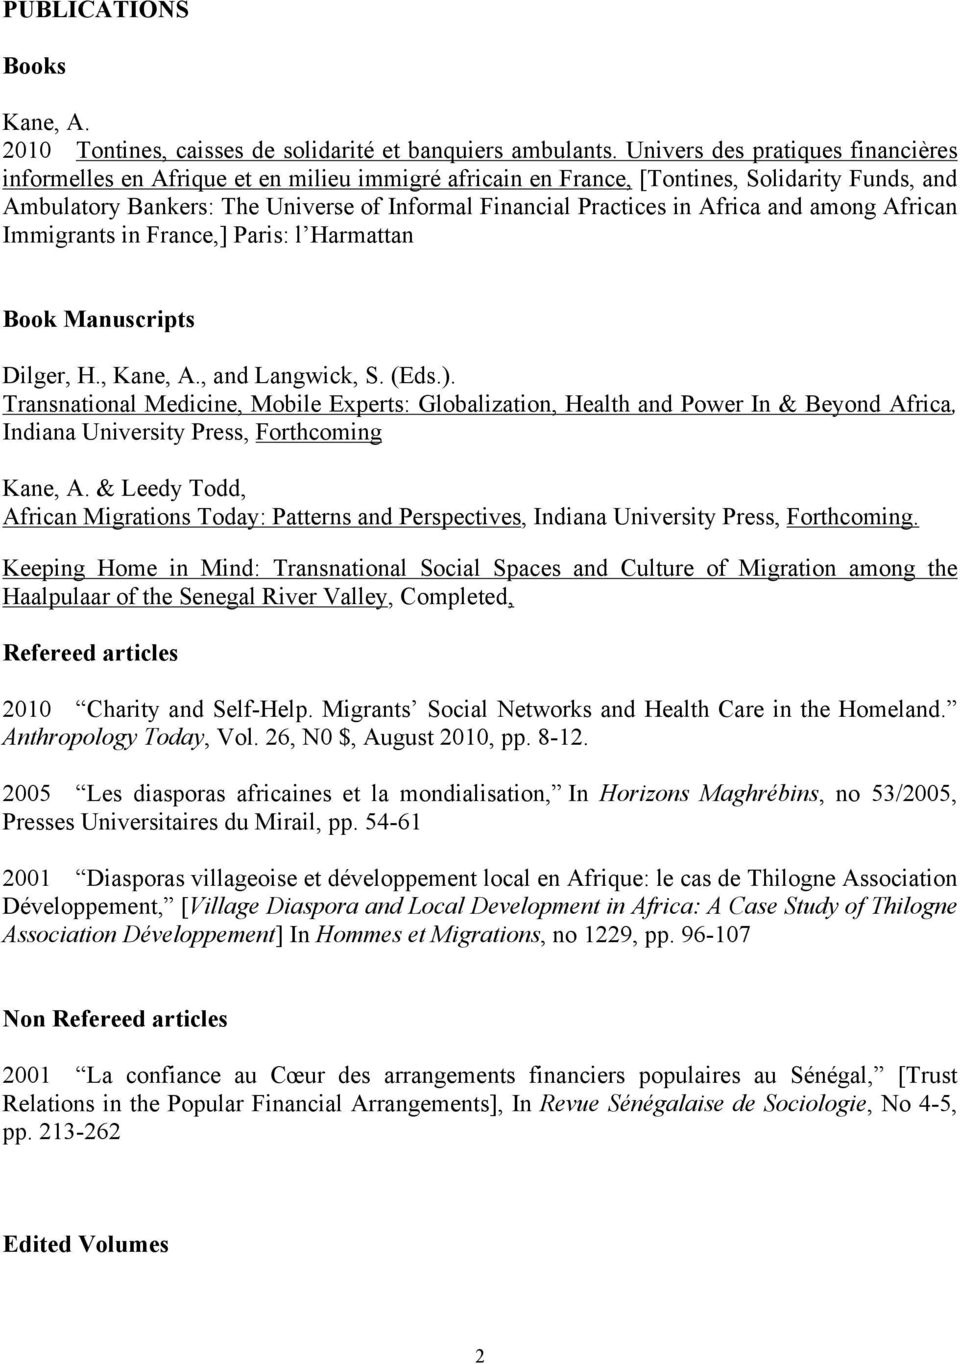 Africa and among African Immigrants in France,] Paris: l Harmattan Book Manuscripts Dilger, H., Kane, A., and Langwick, S. (Eds.).